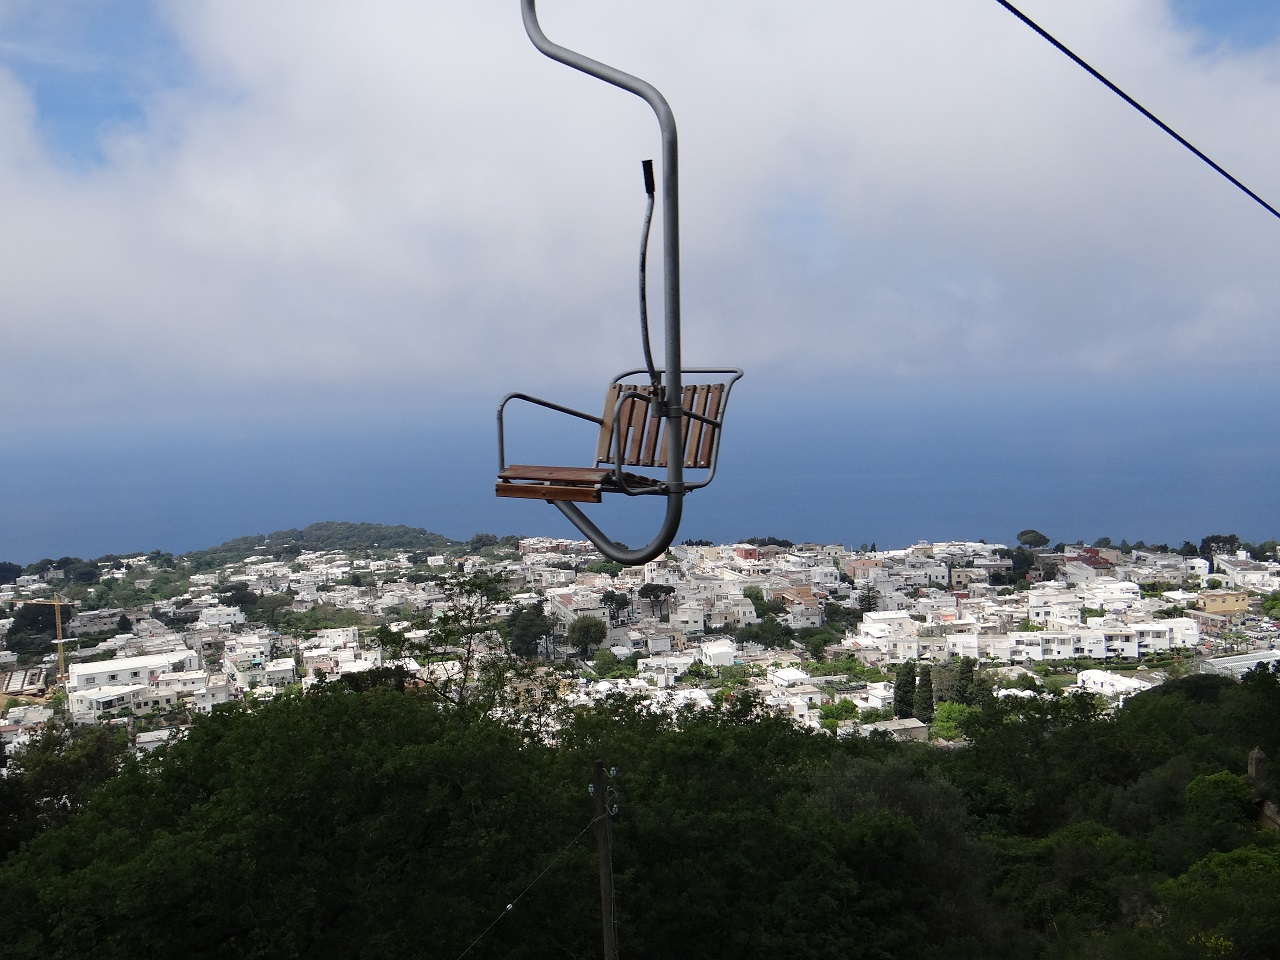 Cable Chair Lift : Flying through the clouds on anacapri chair lift of capri